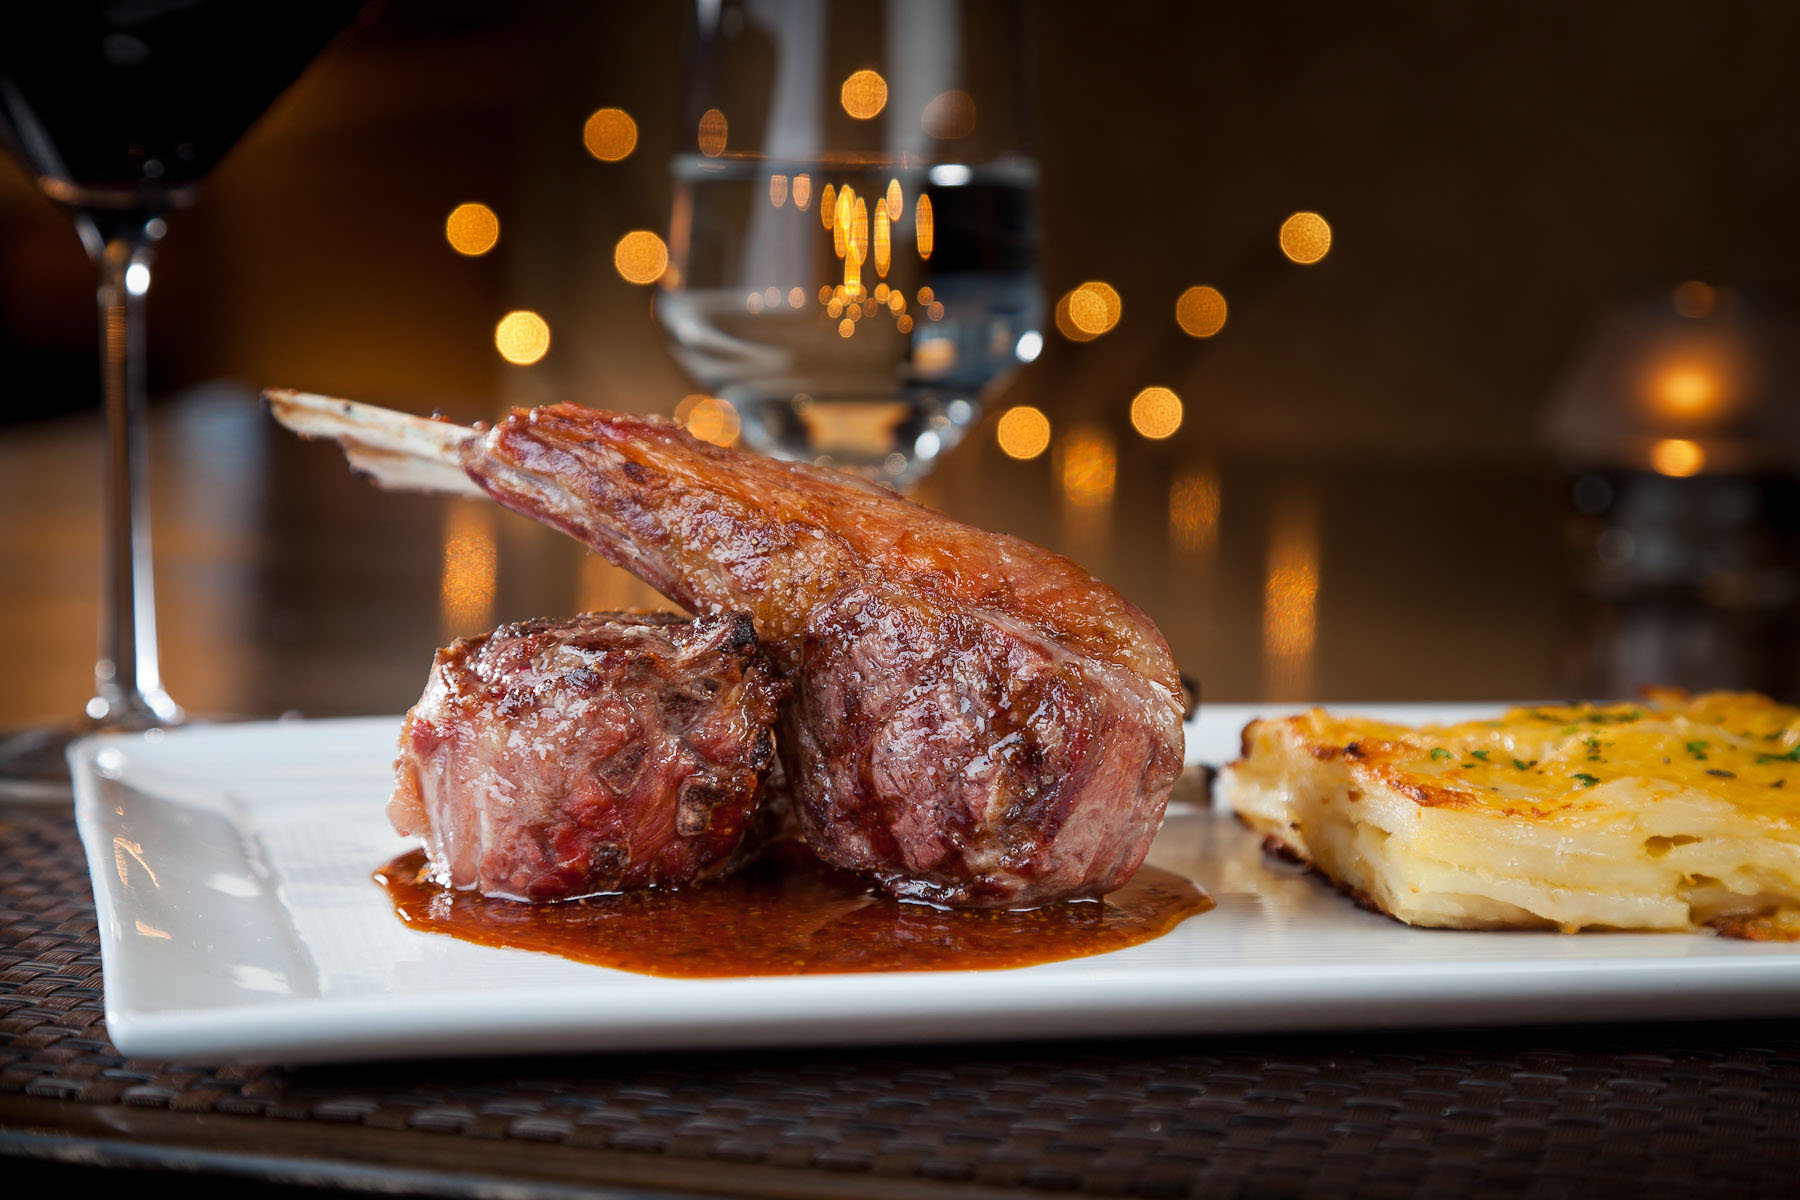 Food photo of Chef Todd Adkins' Lamb Chops at Hideaway Steakhouse in Westminster, CO